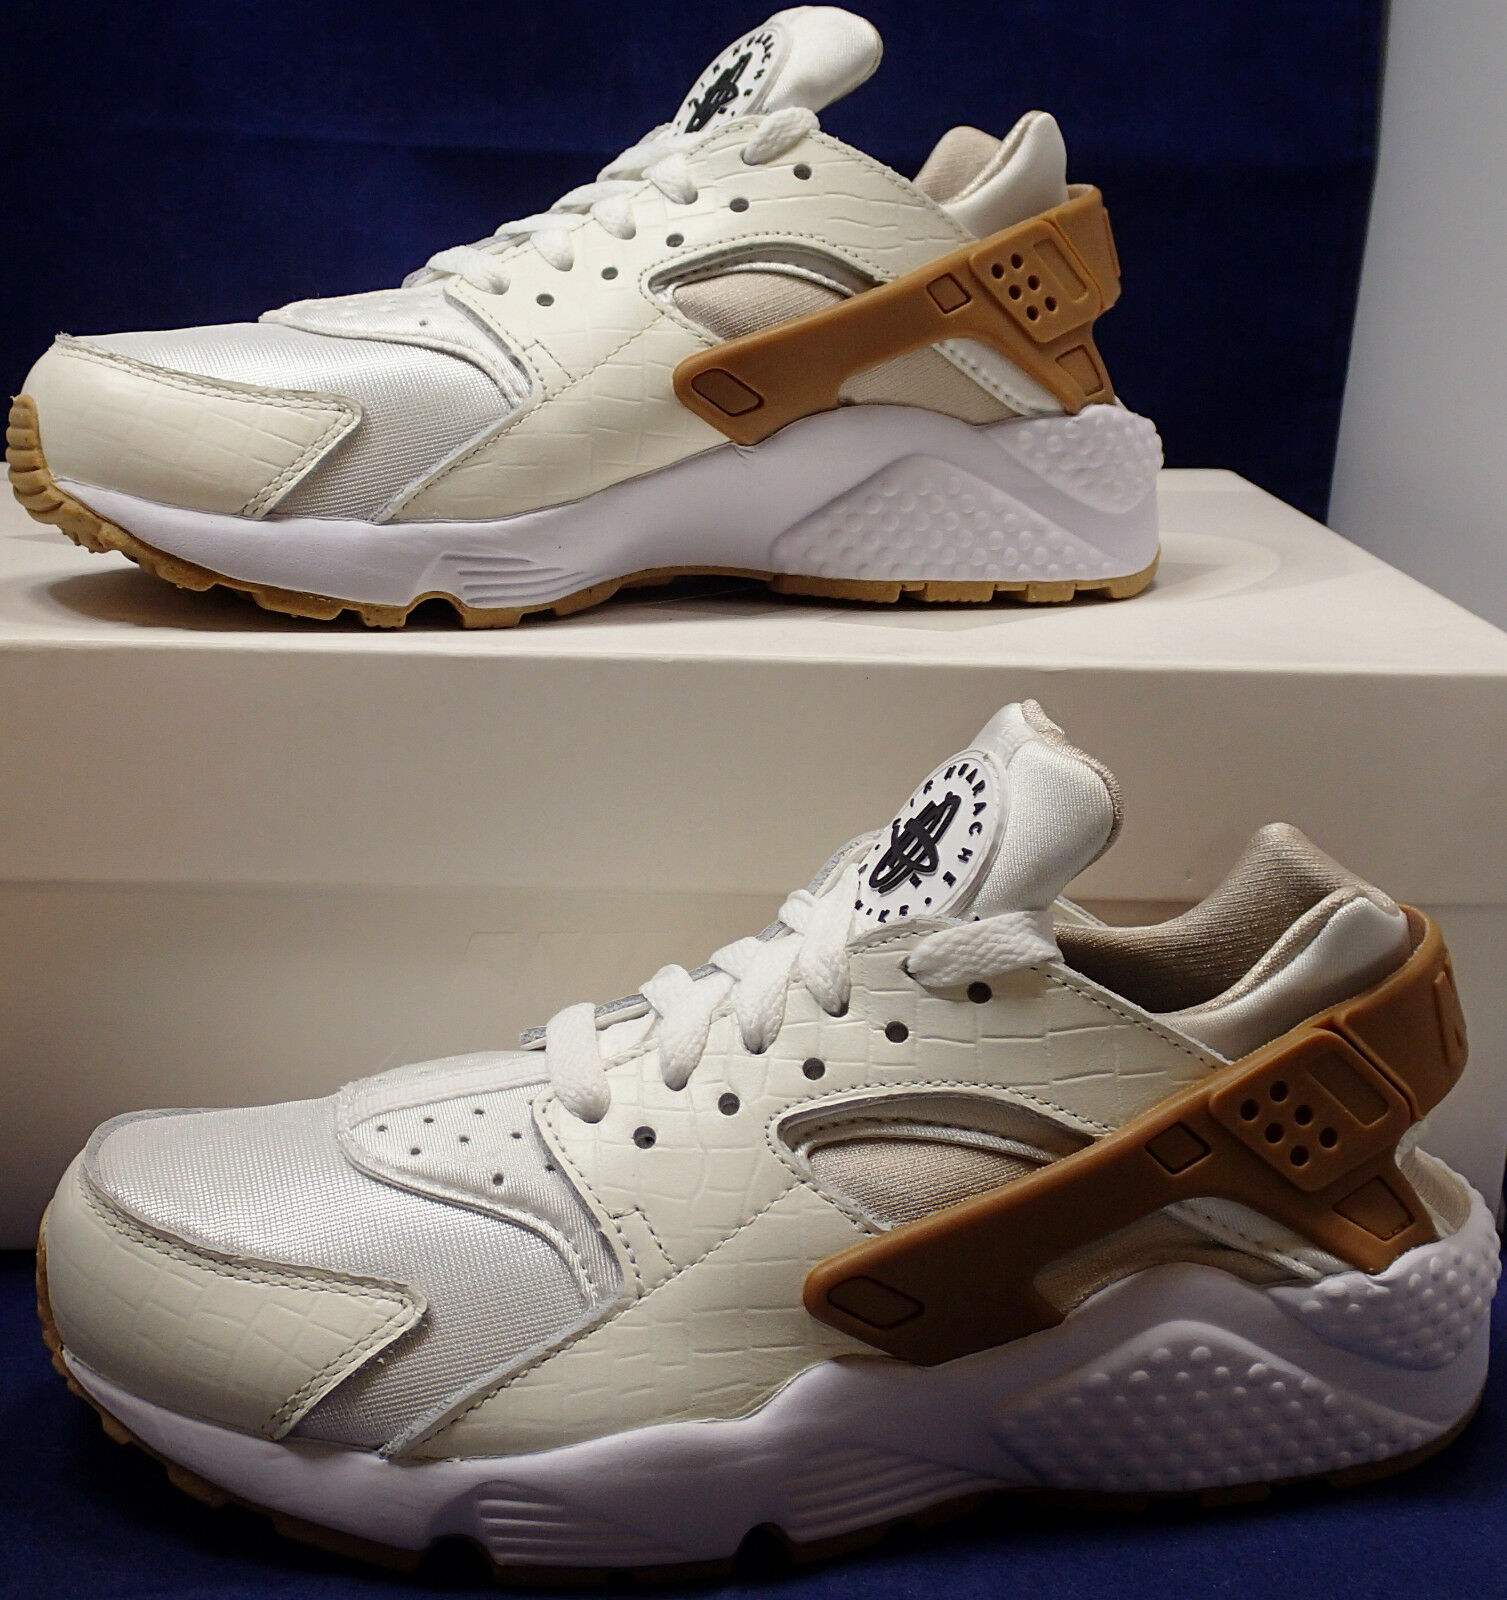 donna Nike Air Huarache Run iD iD iD Croc bianca Marronee Off bianca SZ 6 ( 777331-997 ) 9b7980